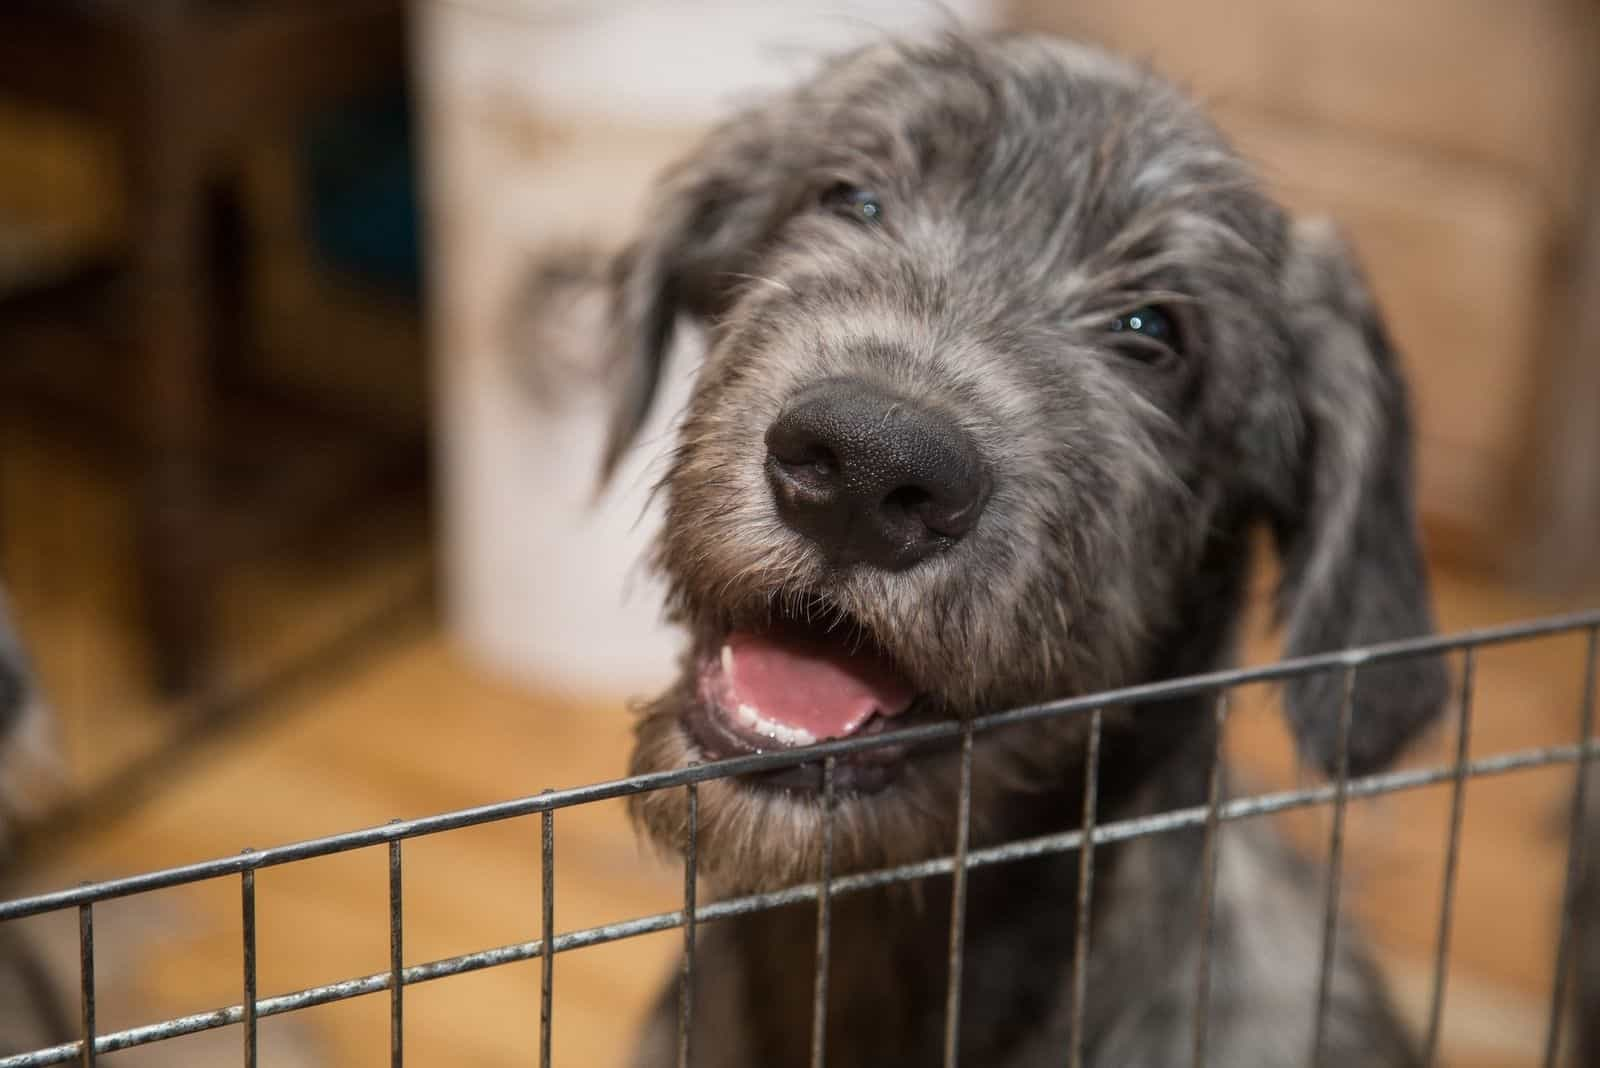 irish wolfhound behind a cage inside the house